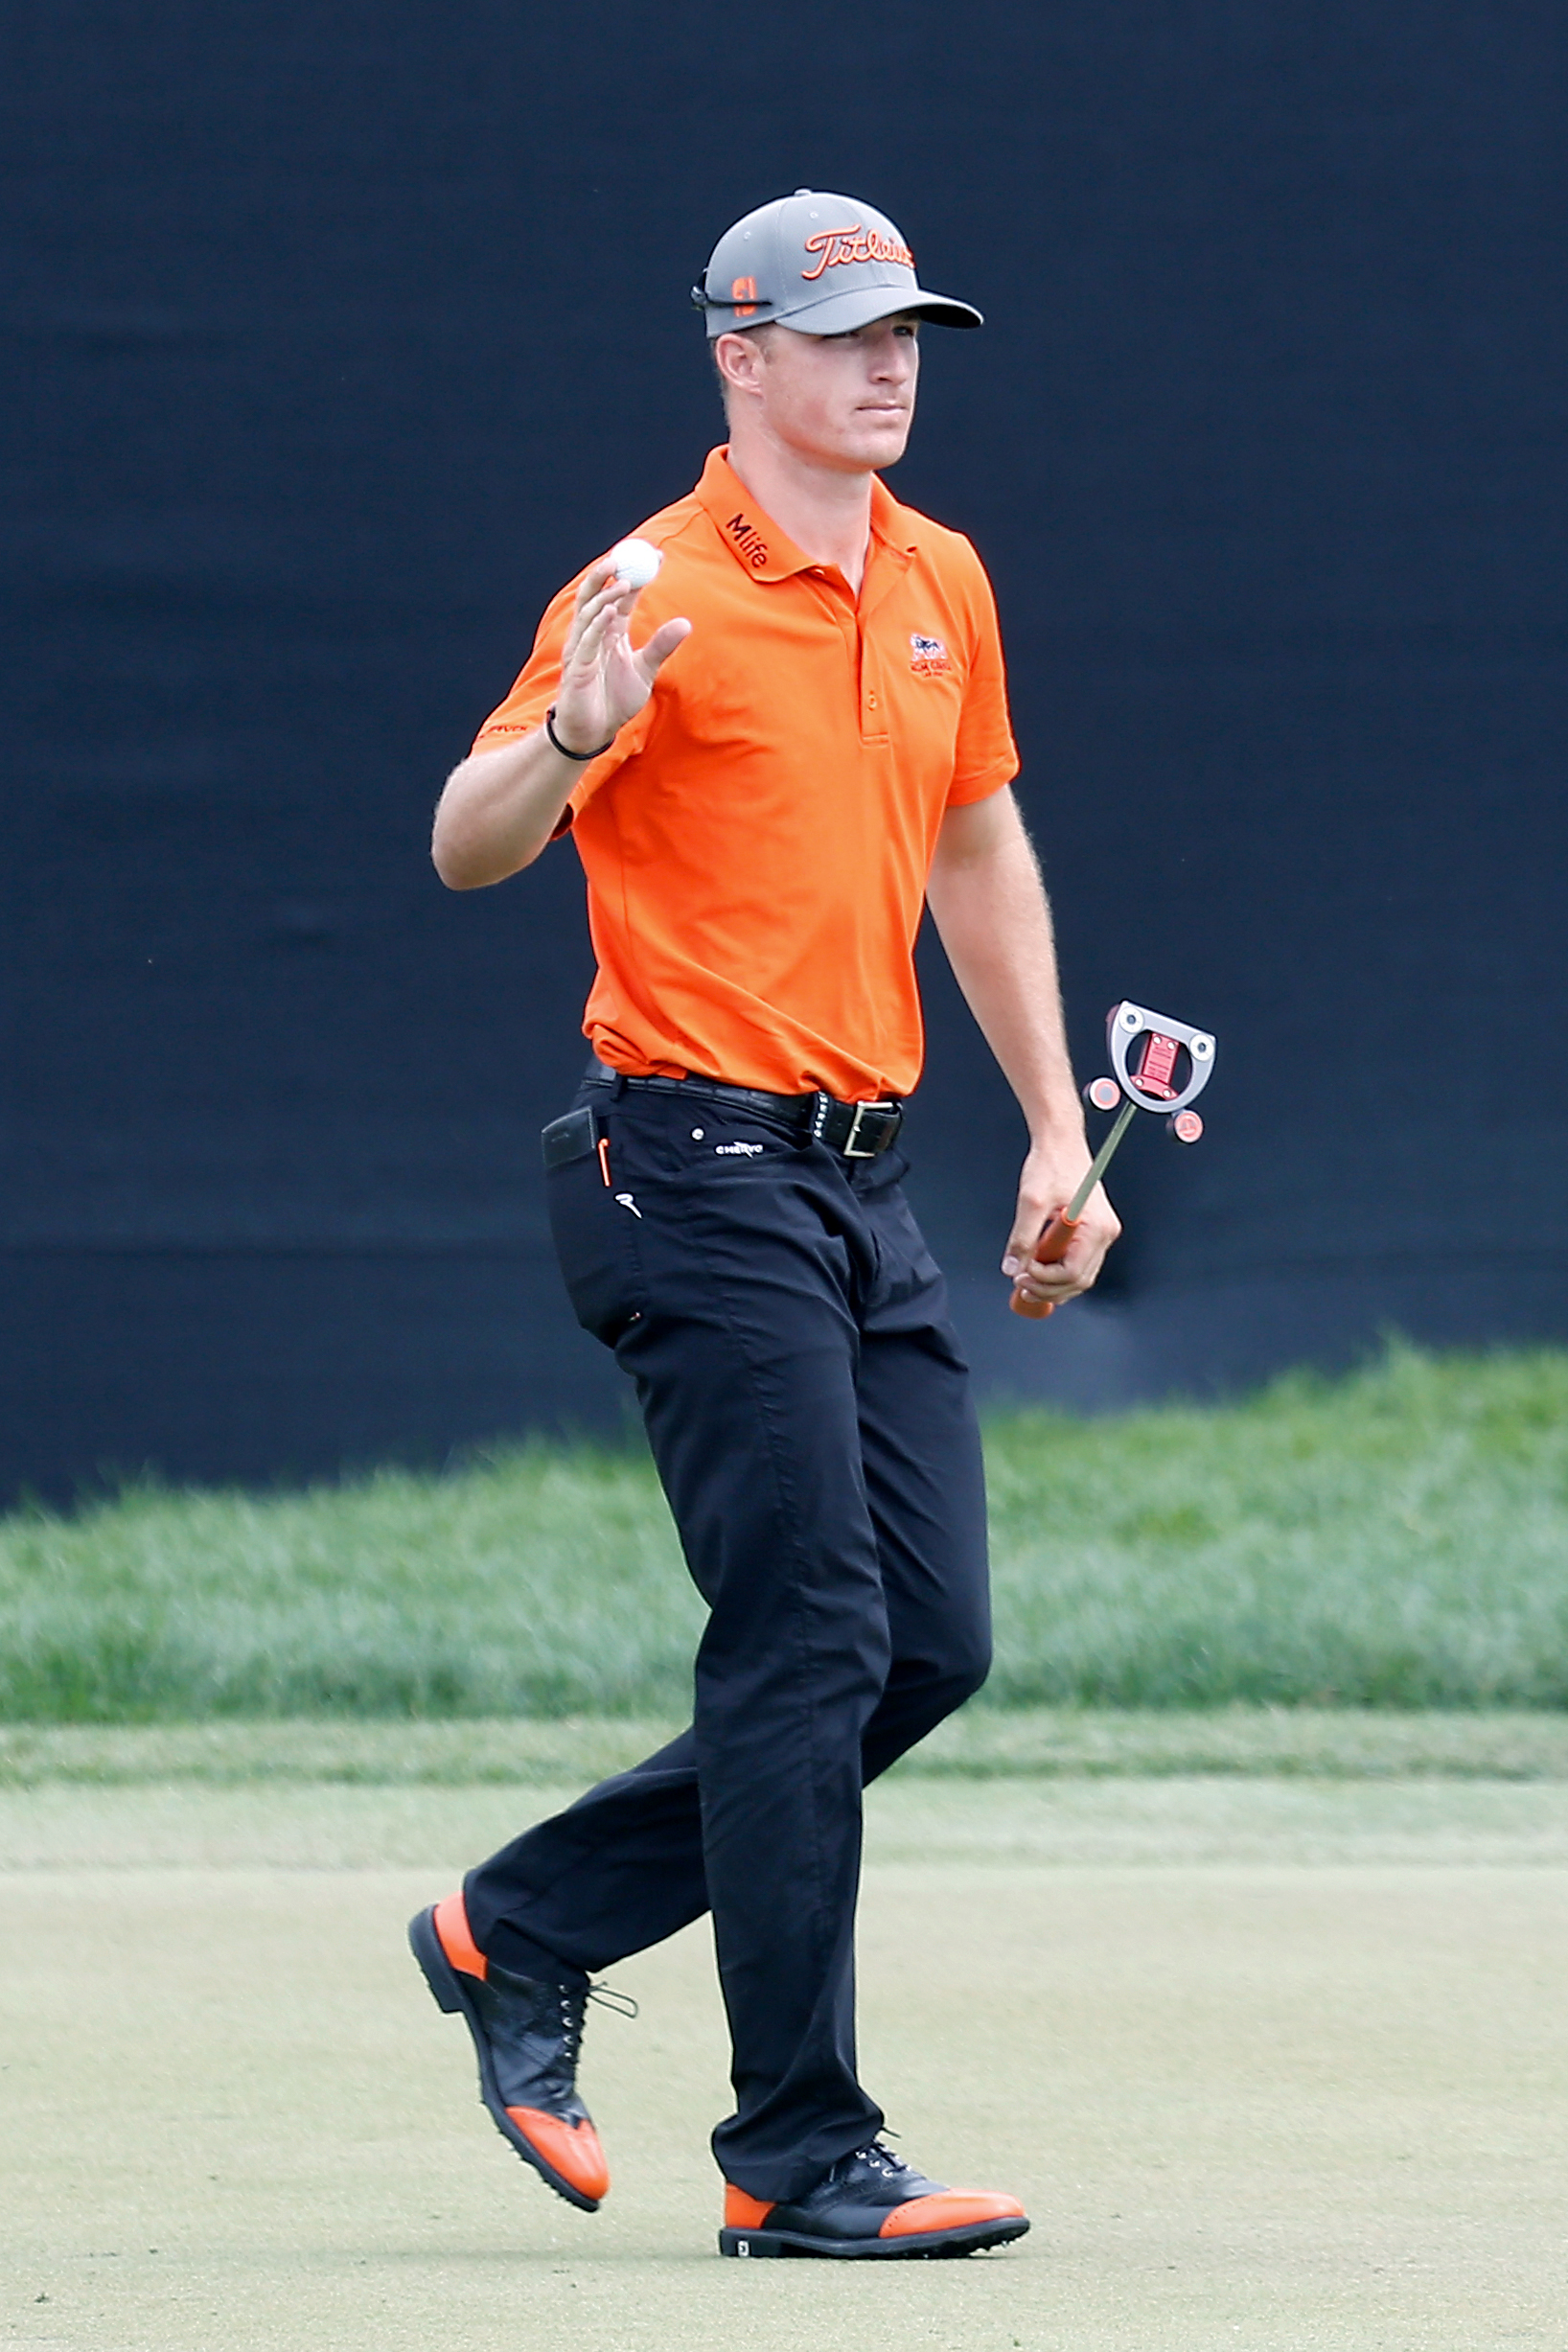 Morgan Hoffmann acknowledges the crowd after making a putt on the eighth green during the final round of the Arnold Palmer Invitational golf tournament in Orlando, Fla., Sunday, March 22, 2015. (AP Photo/Reinhold